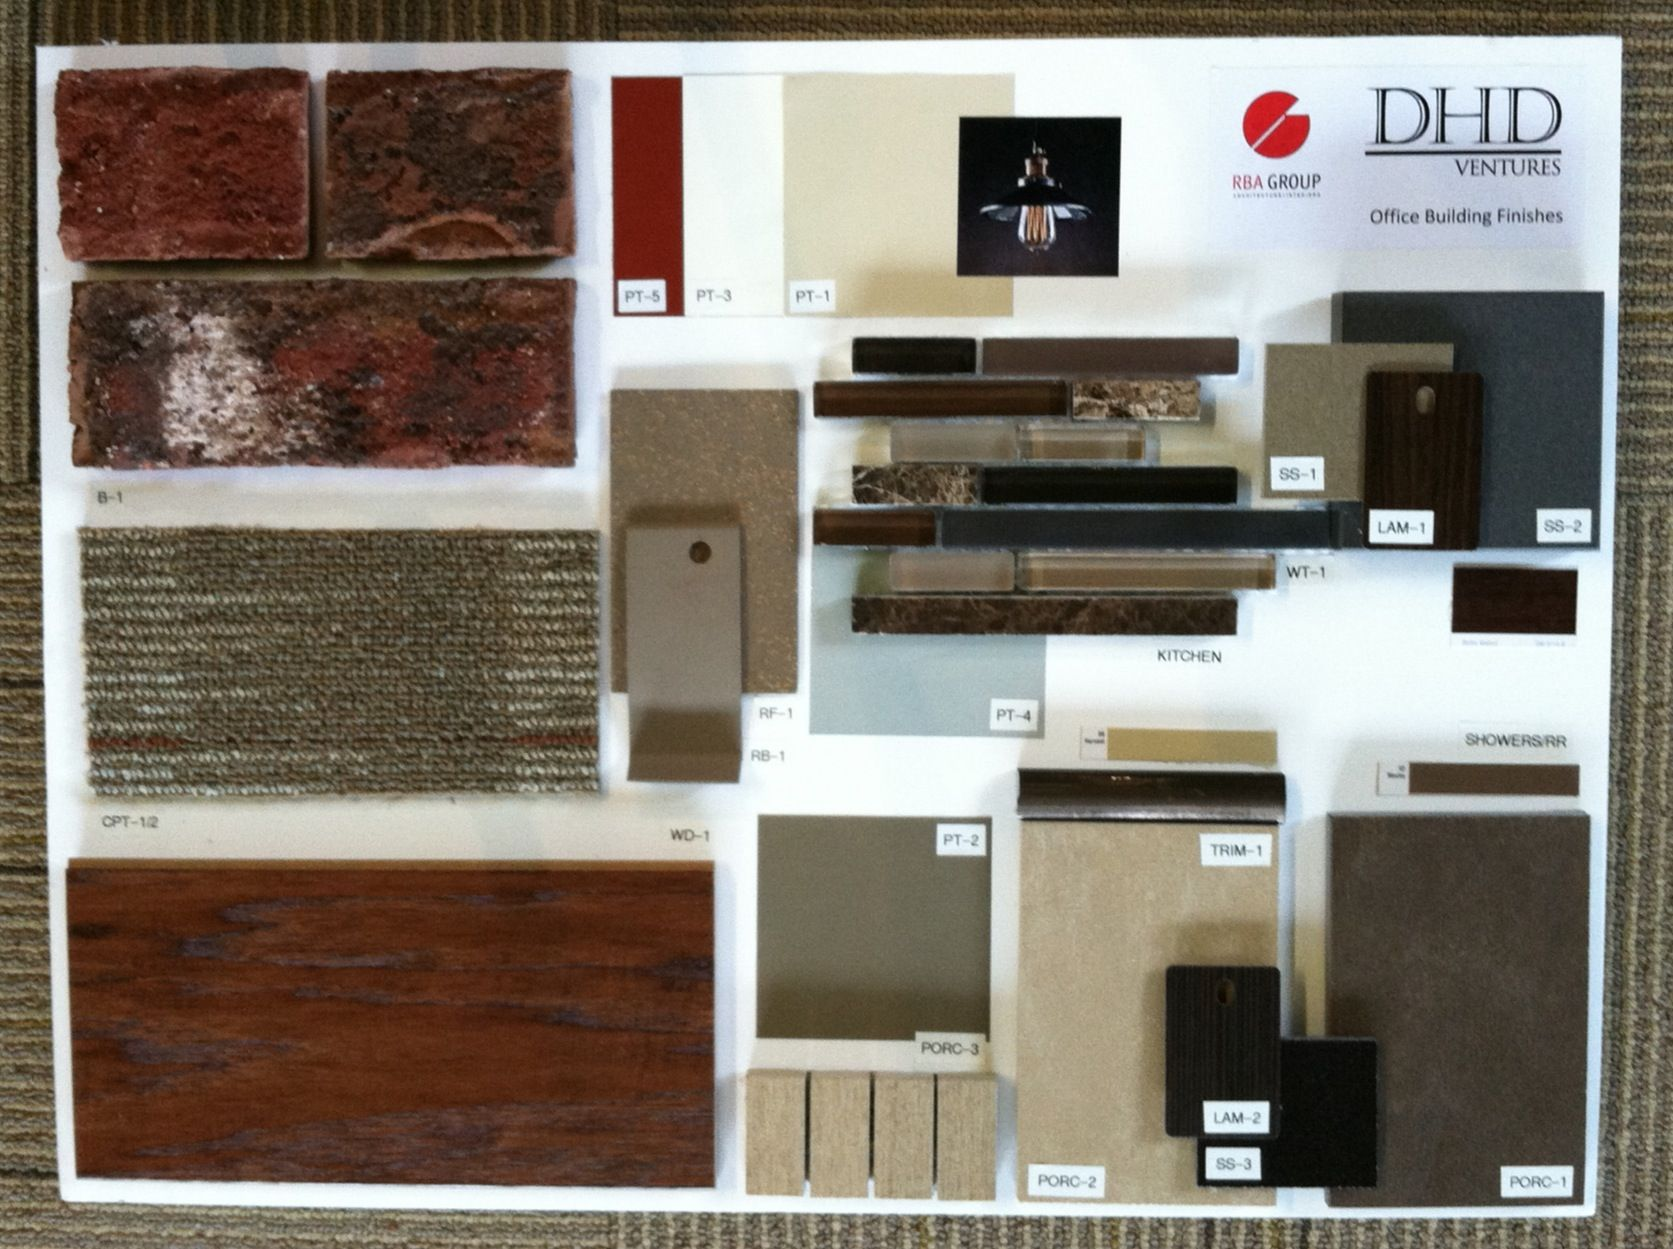 My Latest Interior Design Board Created For A Retrofitted Volunteer Fire Department On Carmel Rd Charlotte NC New Owners Grocer Retail Parcel